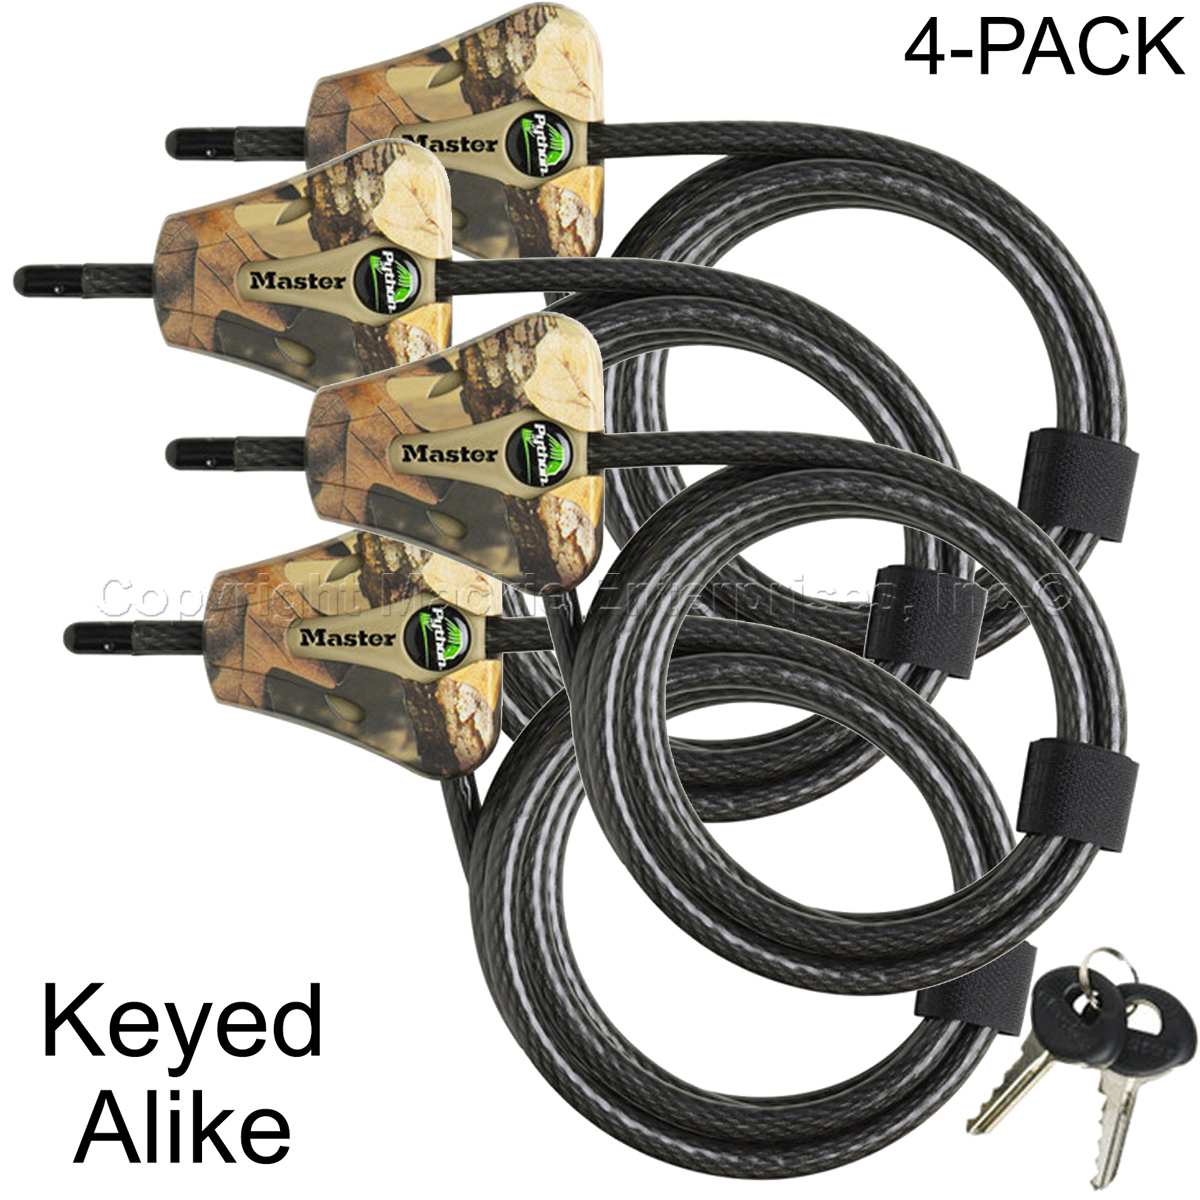 Cable Lock Pack Tree Stand Fastener Locks Supplies Outdoor Accessories NEW